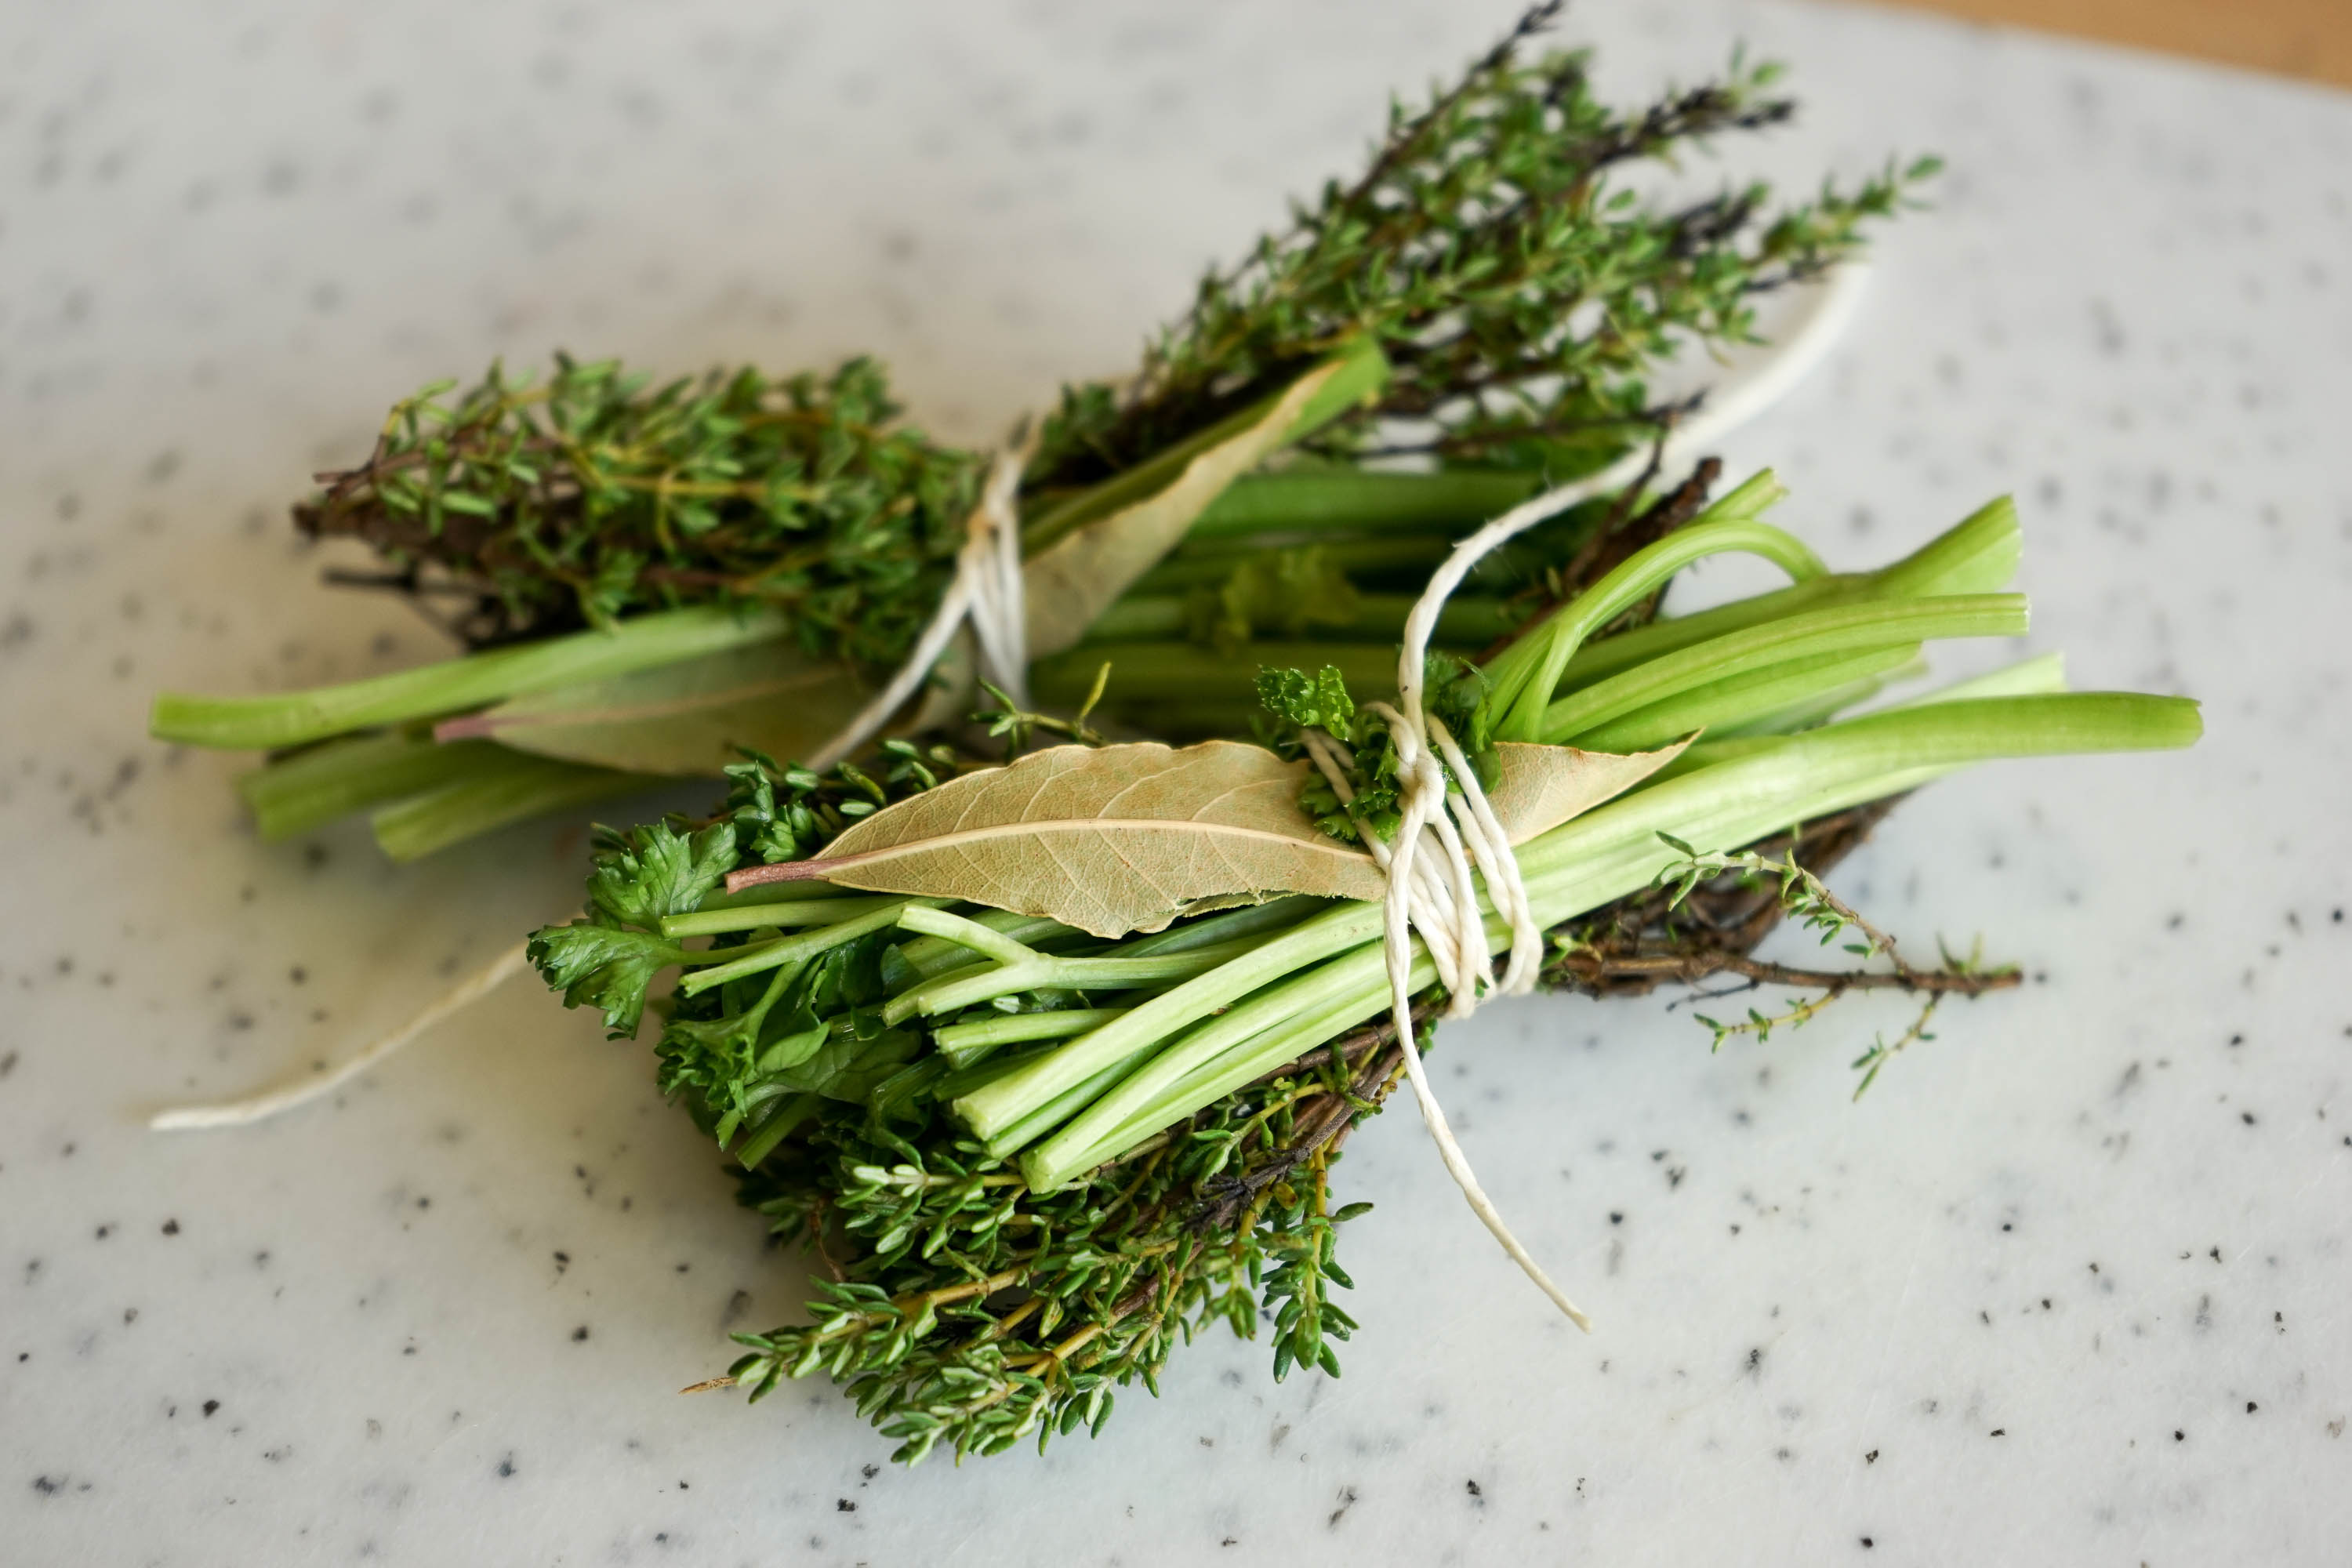 Bouquet garni d finition de bouquet garni lexique du vocabulaire de cuisine - Bouquet garni en cuisine ...